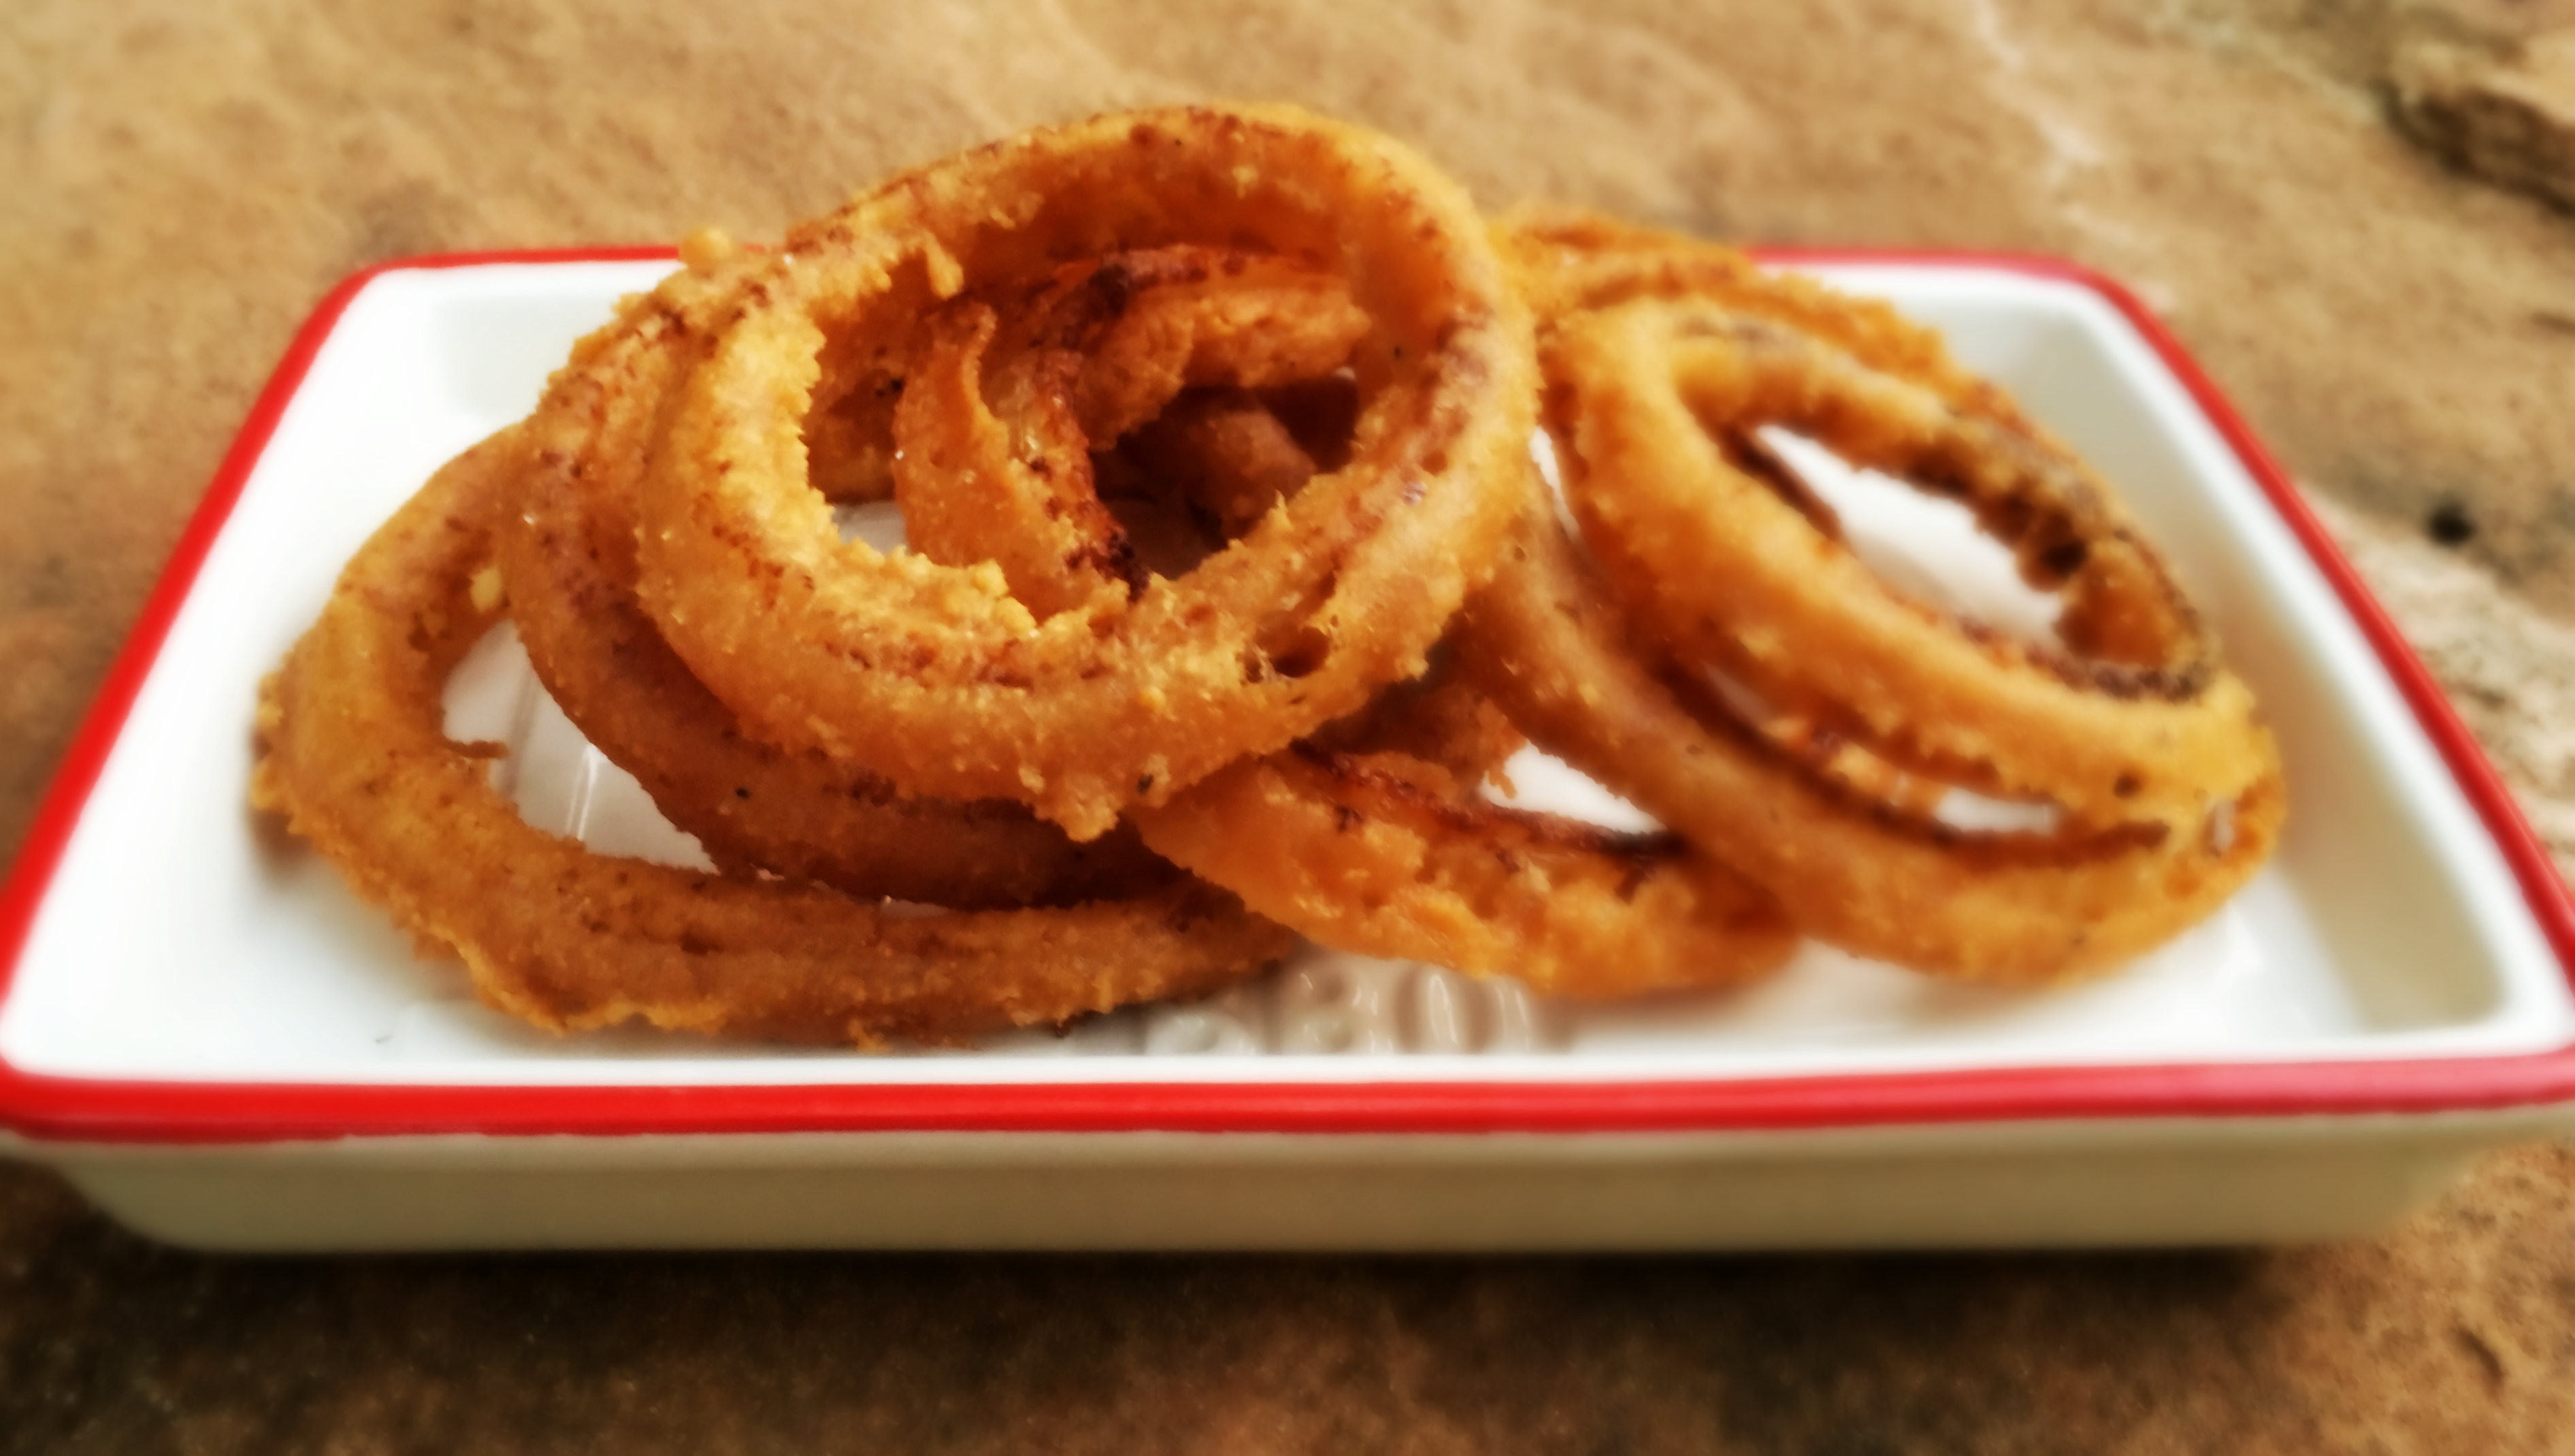 the battered rings graceful vegan baked beer kitchen onion